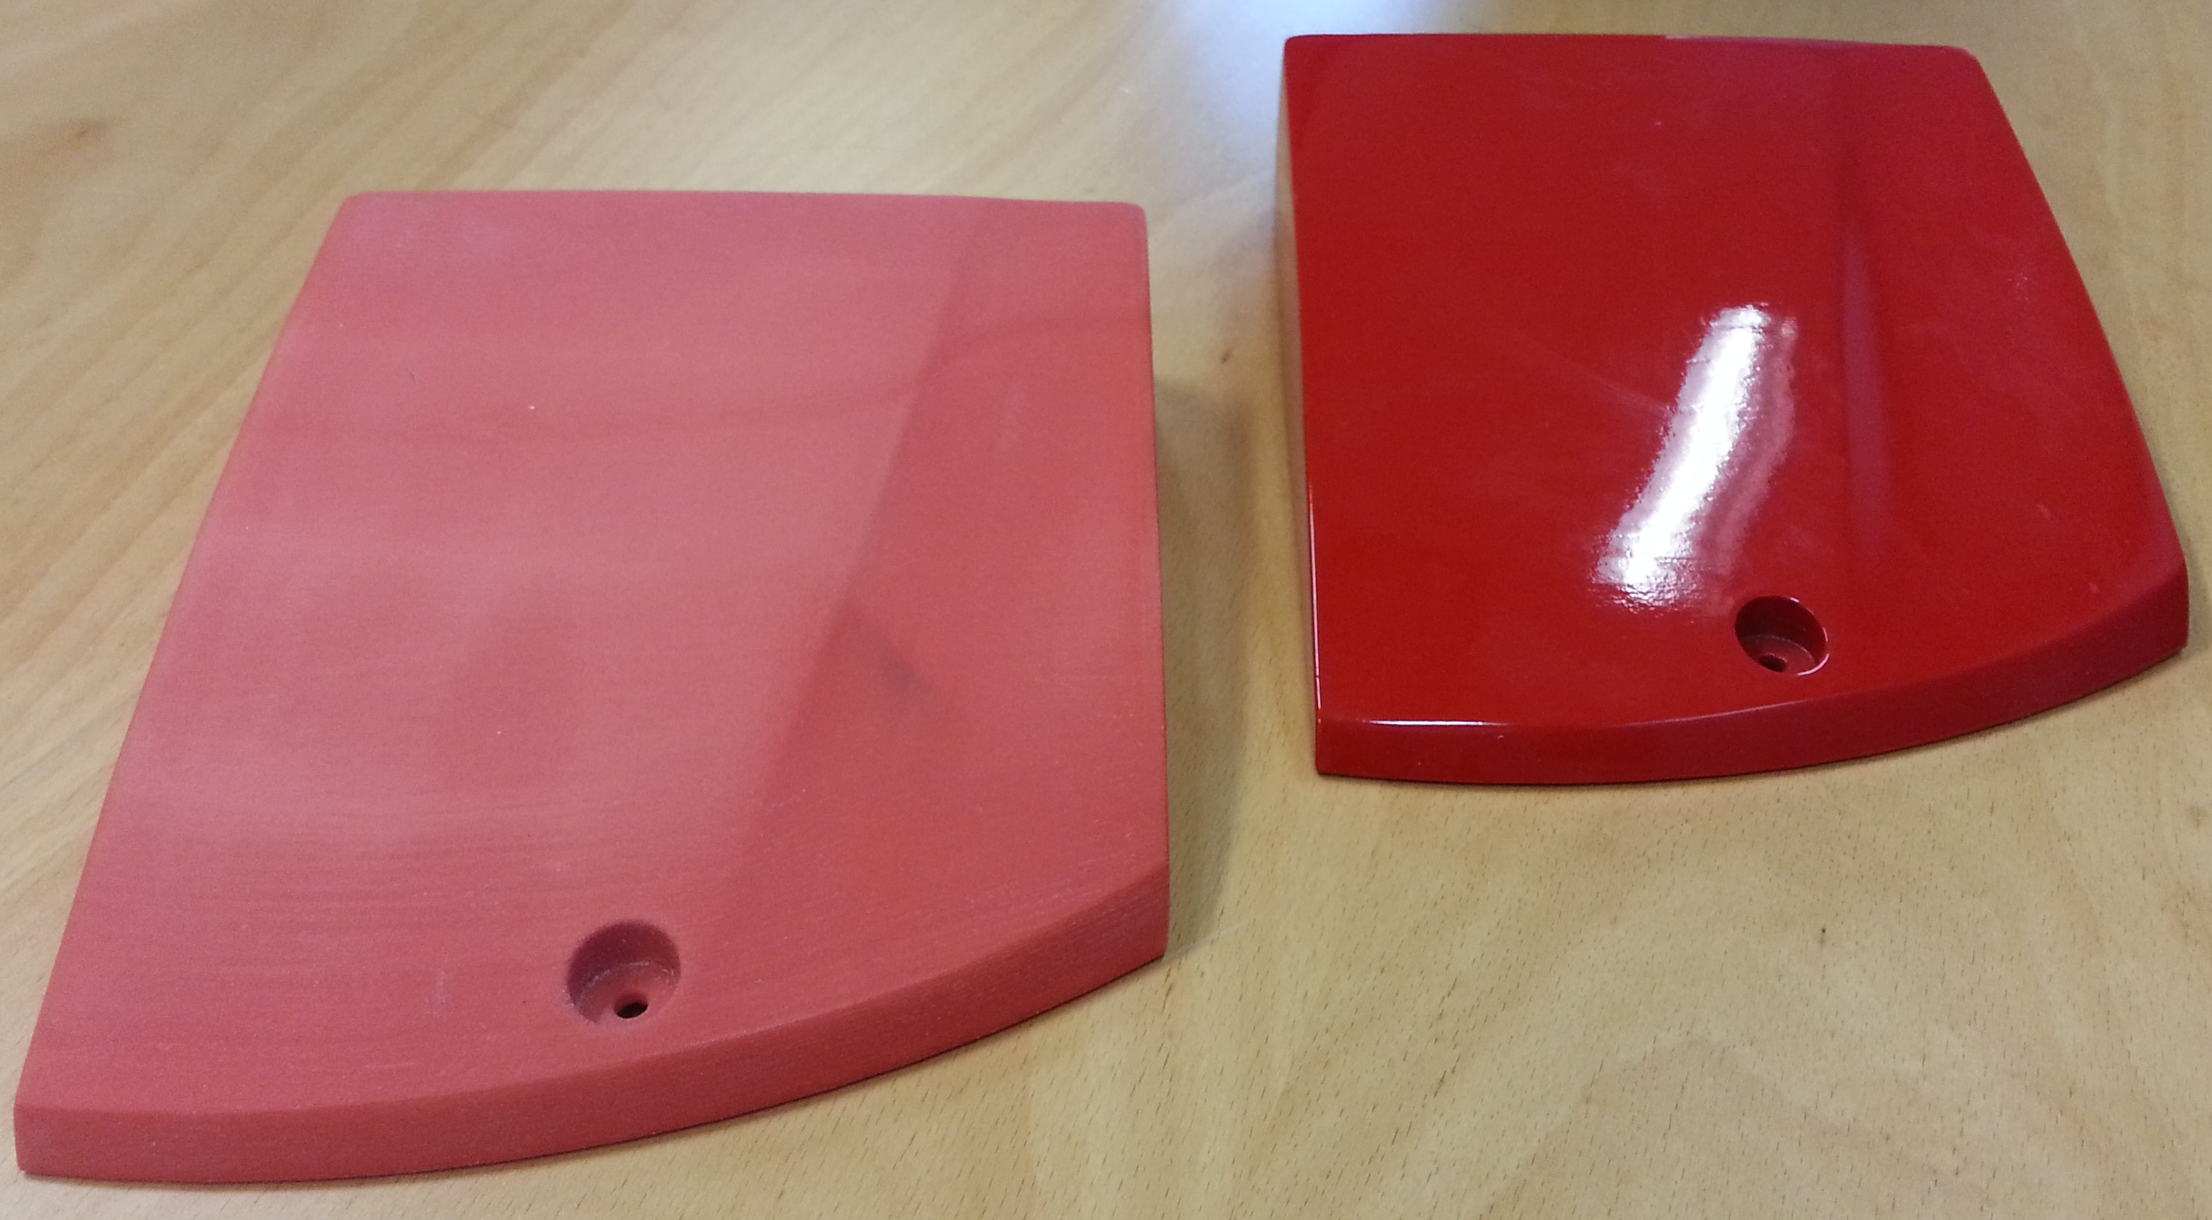 Left: Unpainted finish. Right: Glossy red painted finish.